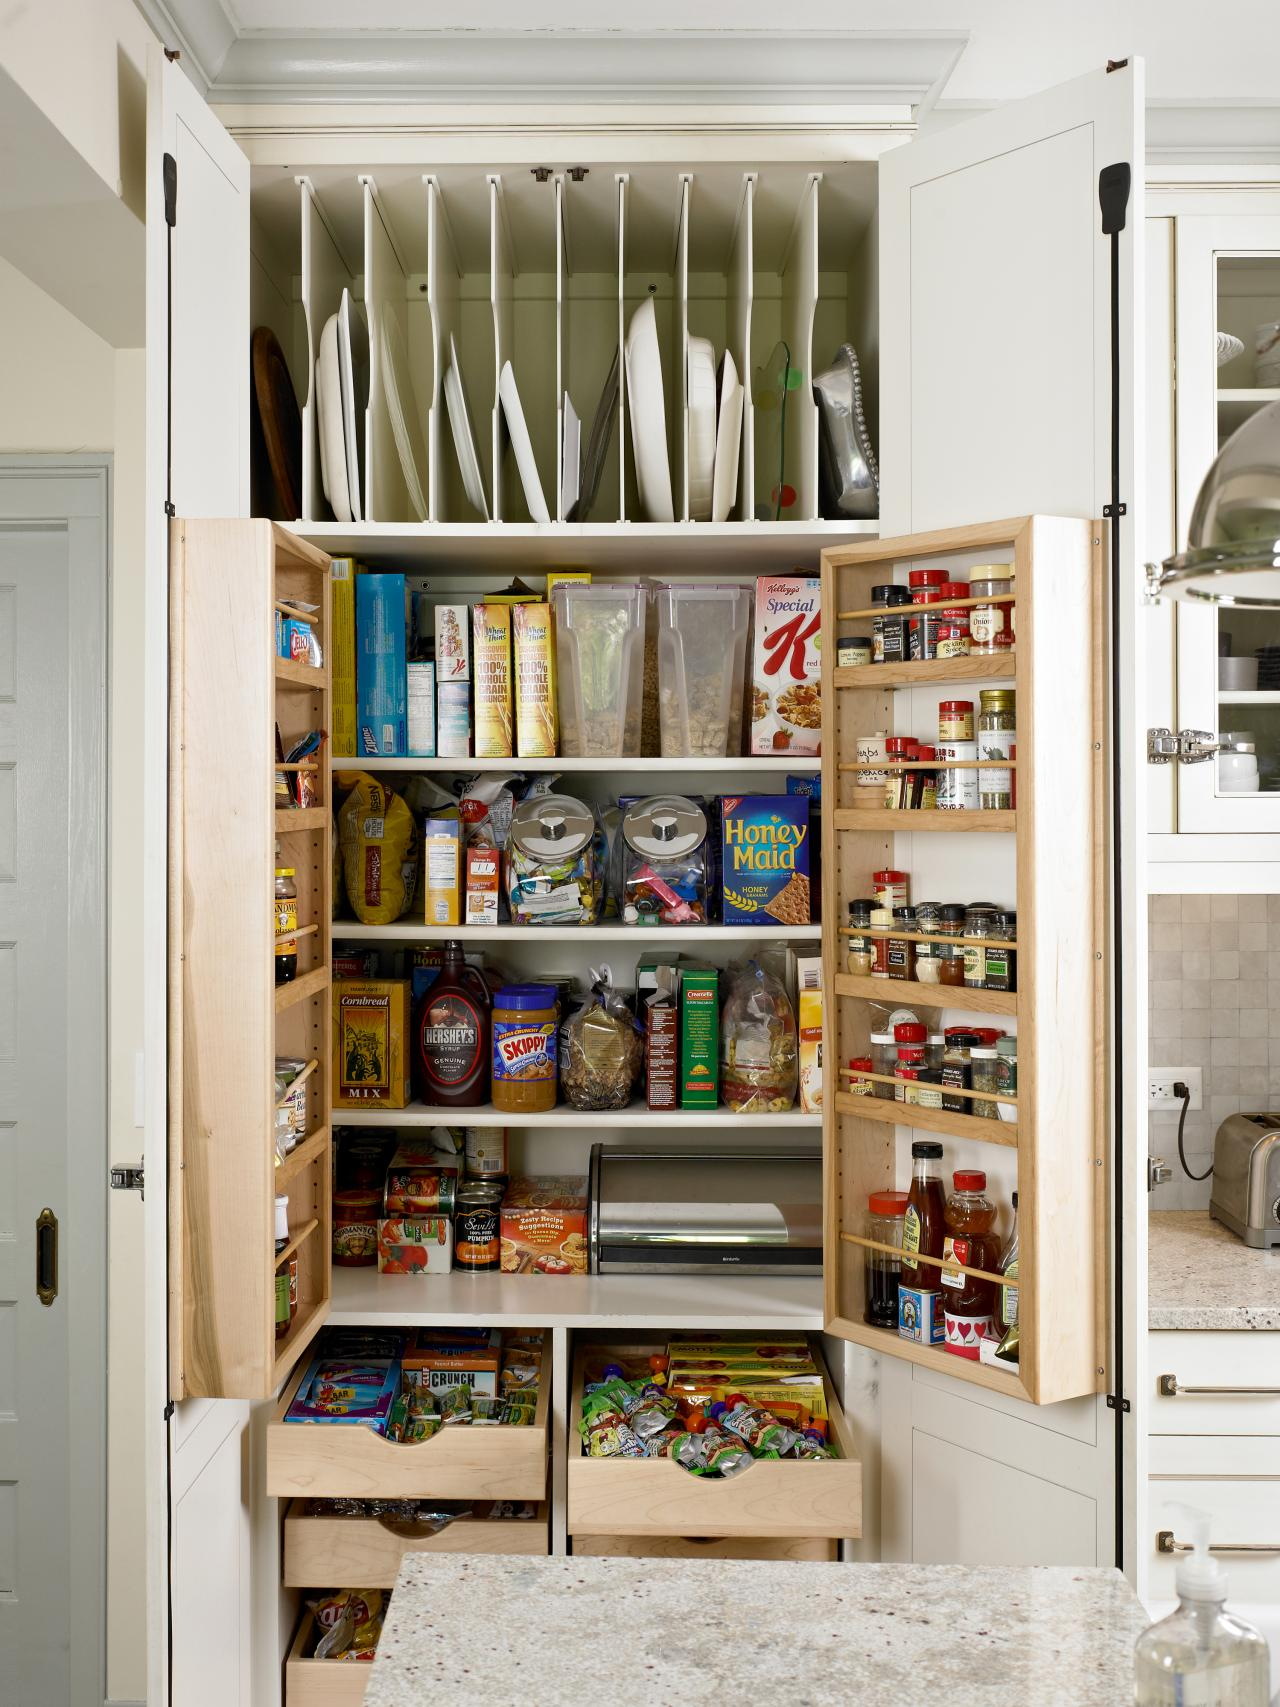 Kitchen Storage Ideas Small Kitchen Storage Ideas Pictures & Tips From Hgtv  Hgtv